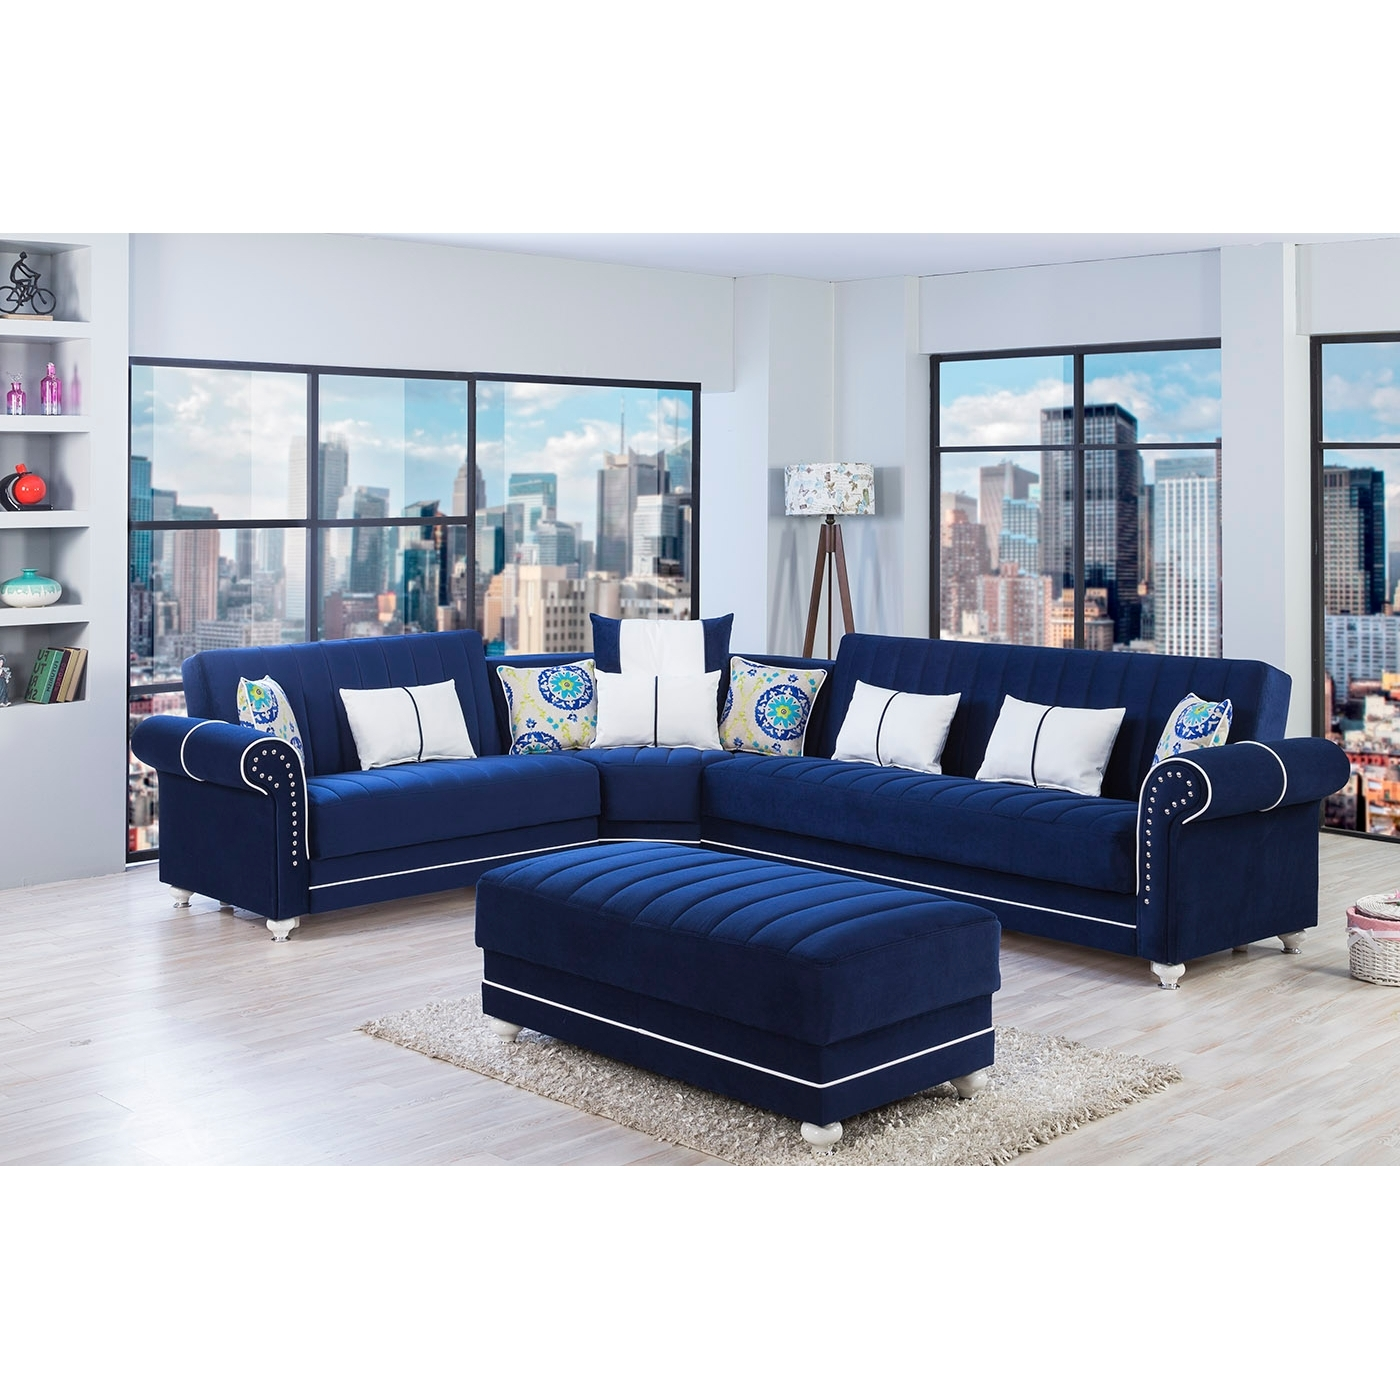 Preferred Royal Furniture Sectional Sofas Throughout Furniture :: Functional Sectionals :: Royal Home Sectional Riva (View 7 of 20)